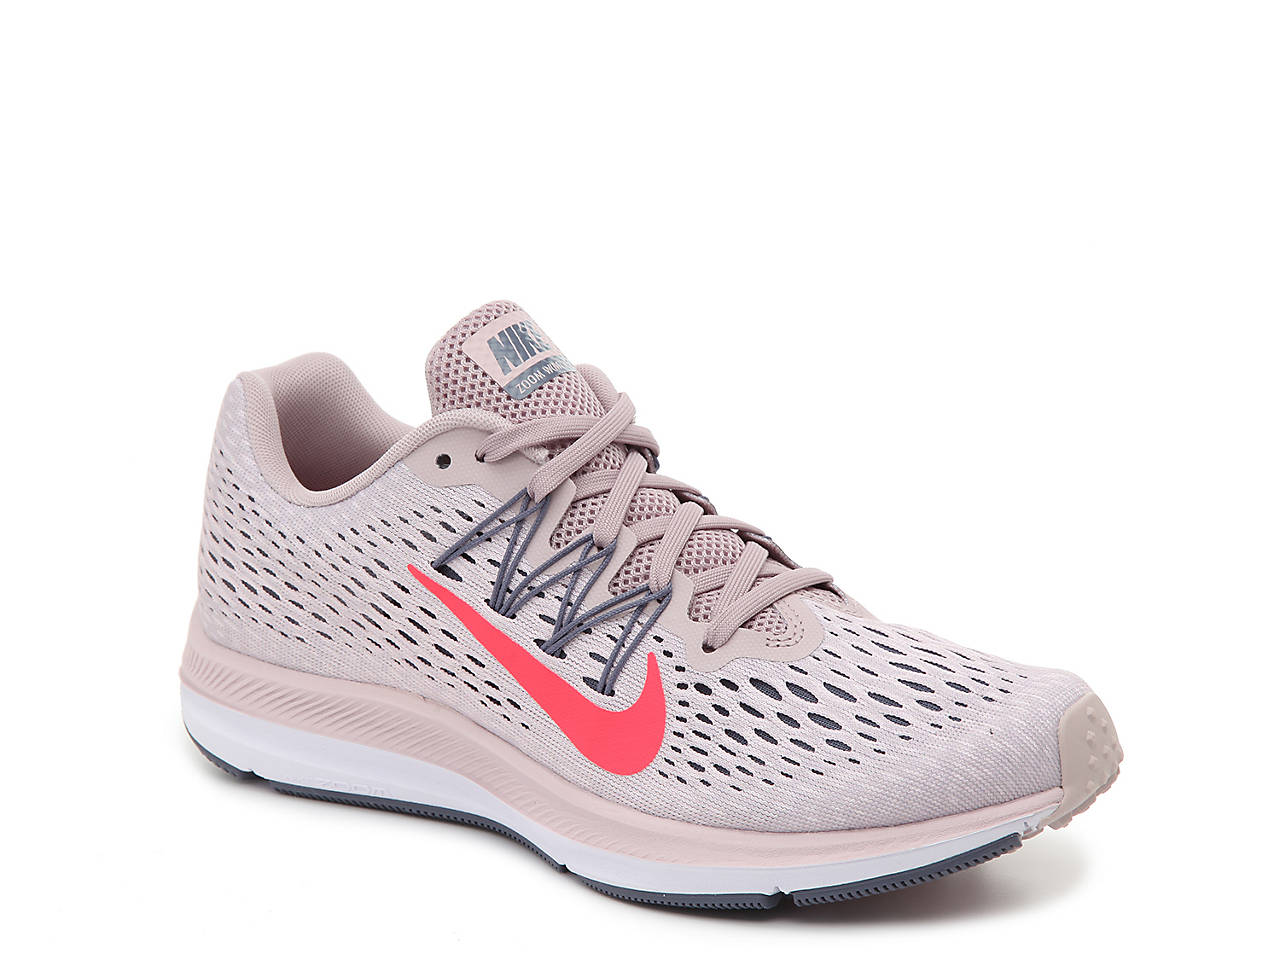 Nike Zoom Winflo 5 Running Shoe - Women s Women s Shoes  22a41342b5